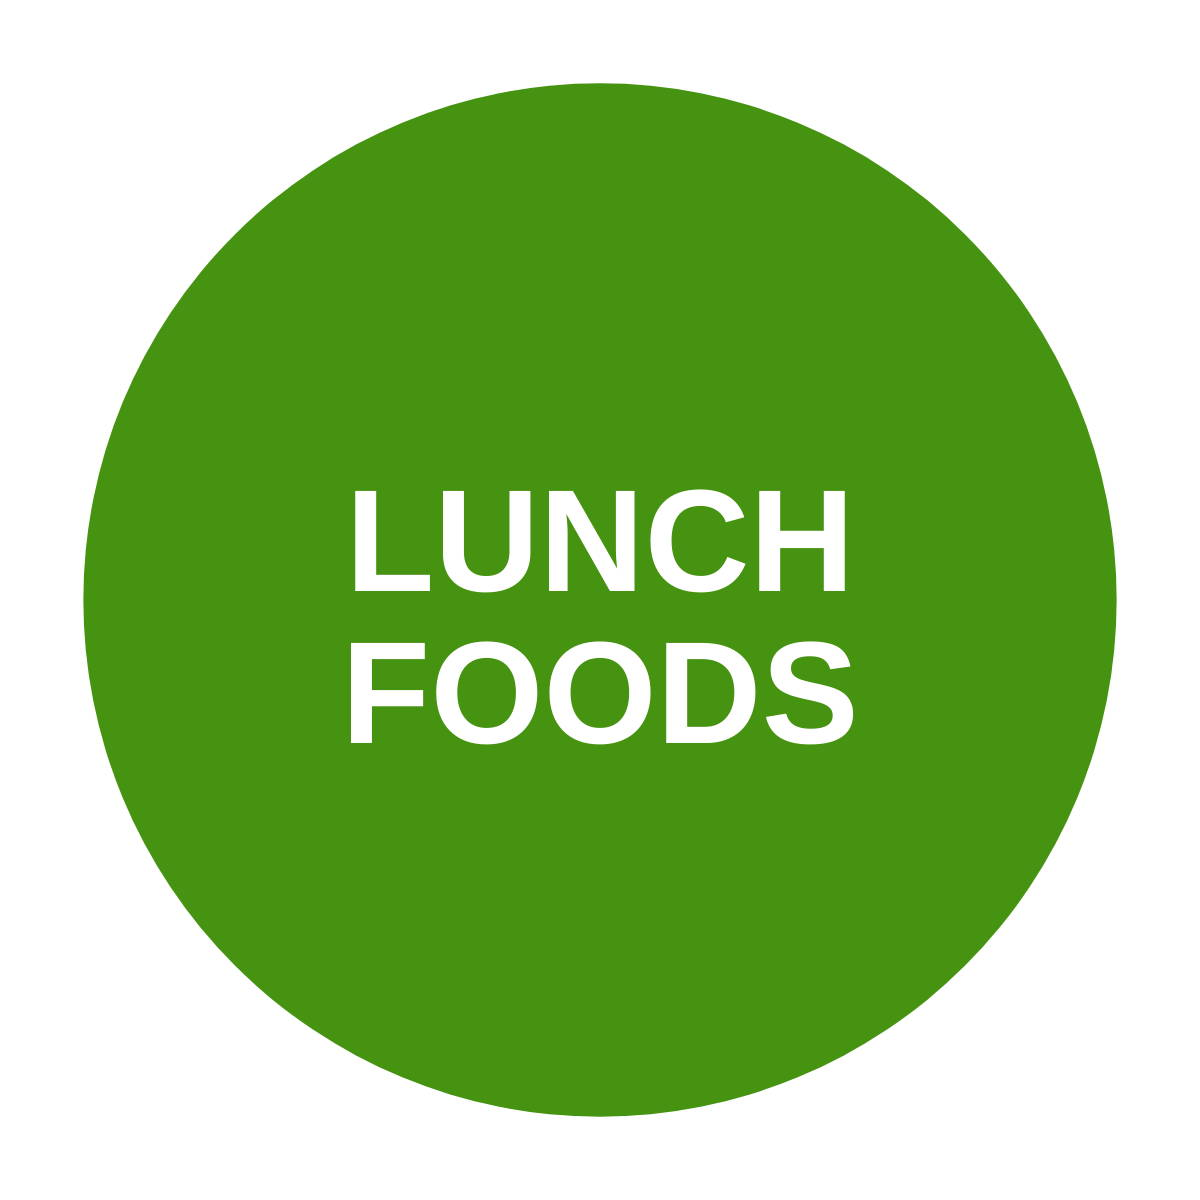 Green lunch foods icon